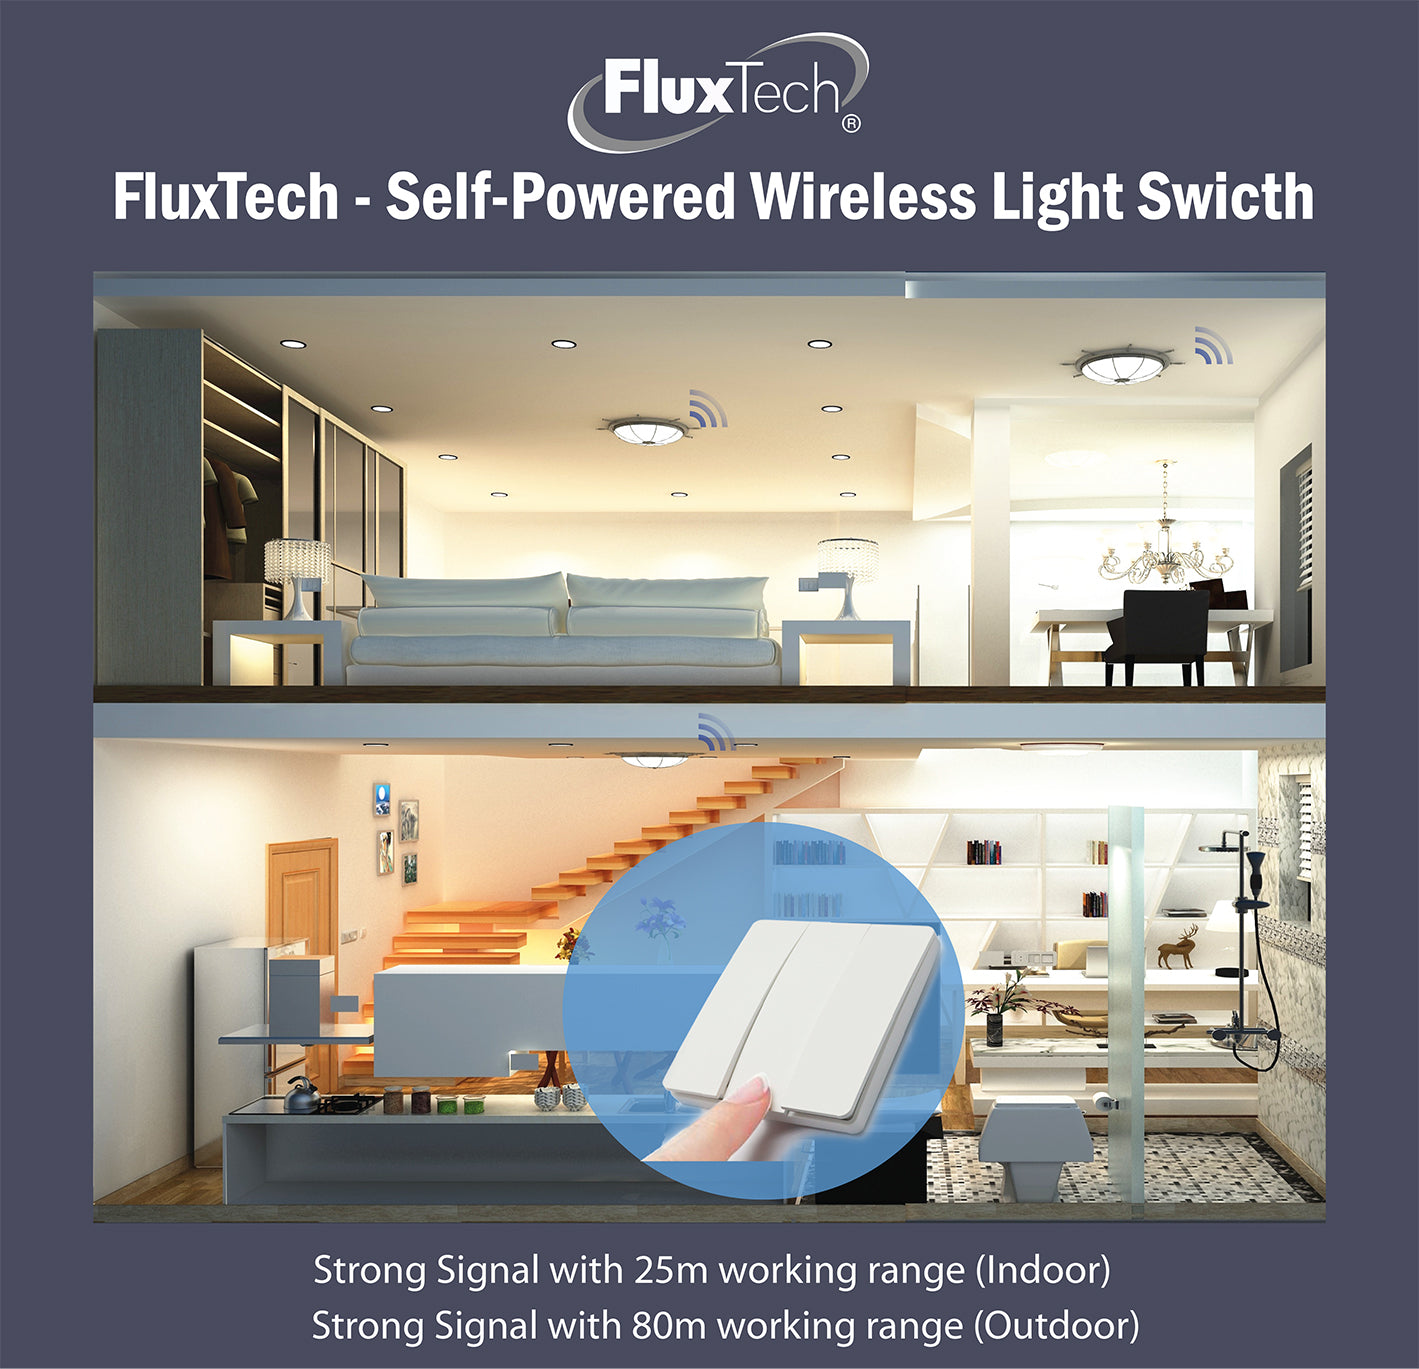 FluxTech - Self-powered Wireless Light Switch